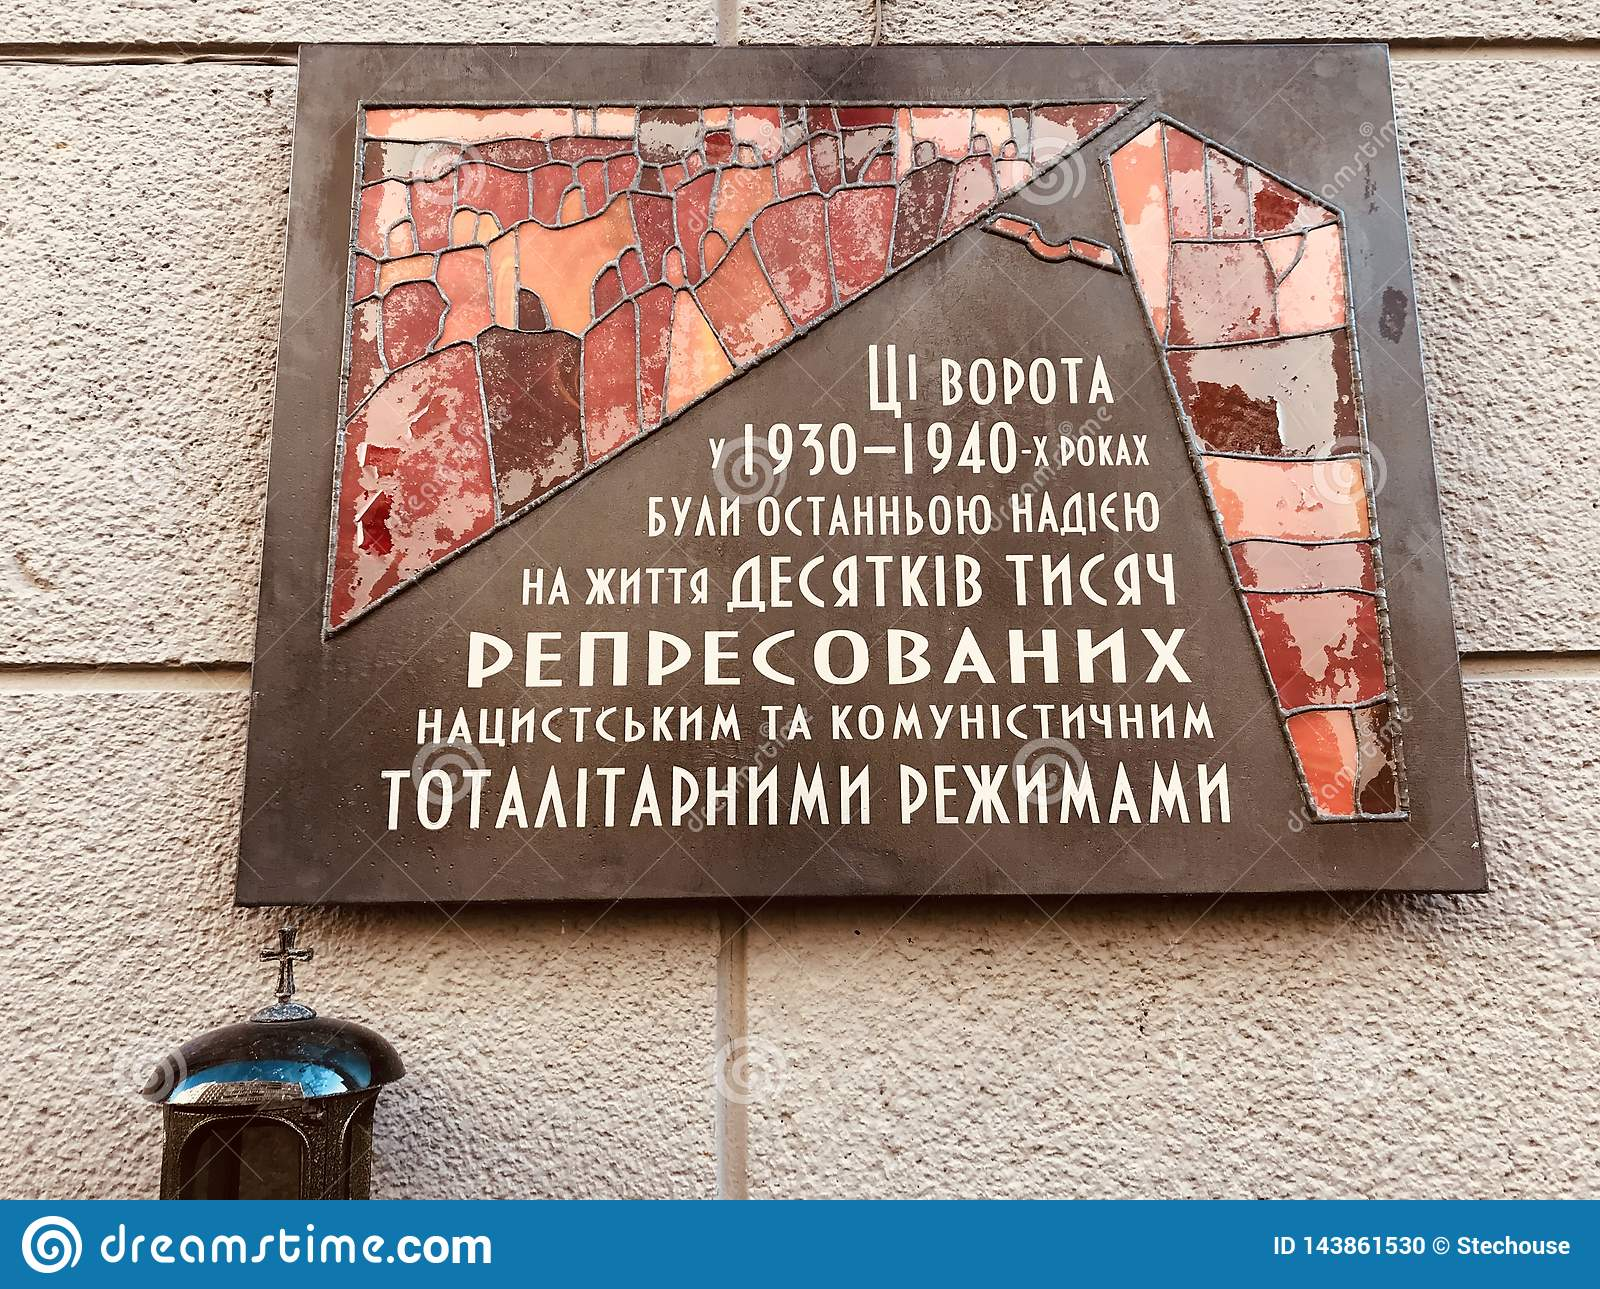 A monument to the victims of Totalitarian Regimes in Ukraine - KYIV or KIEV